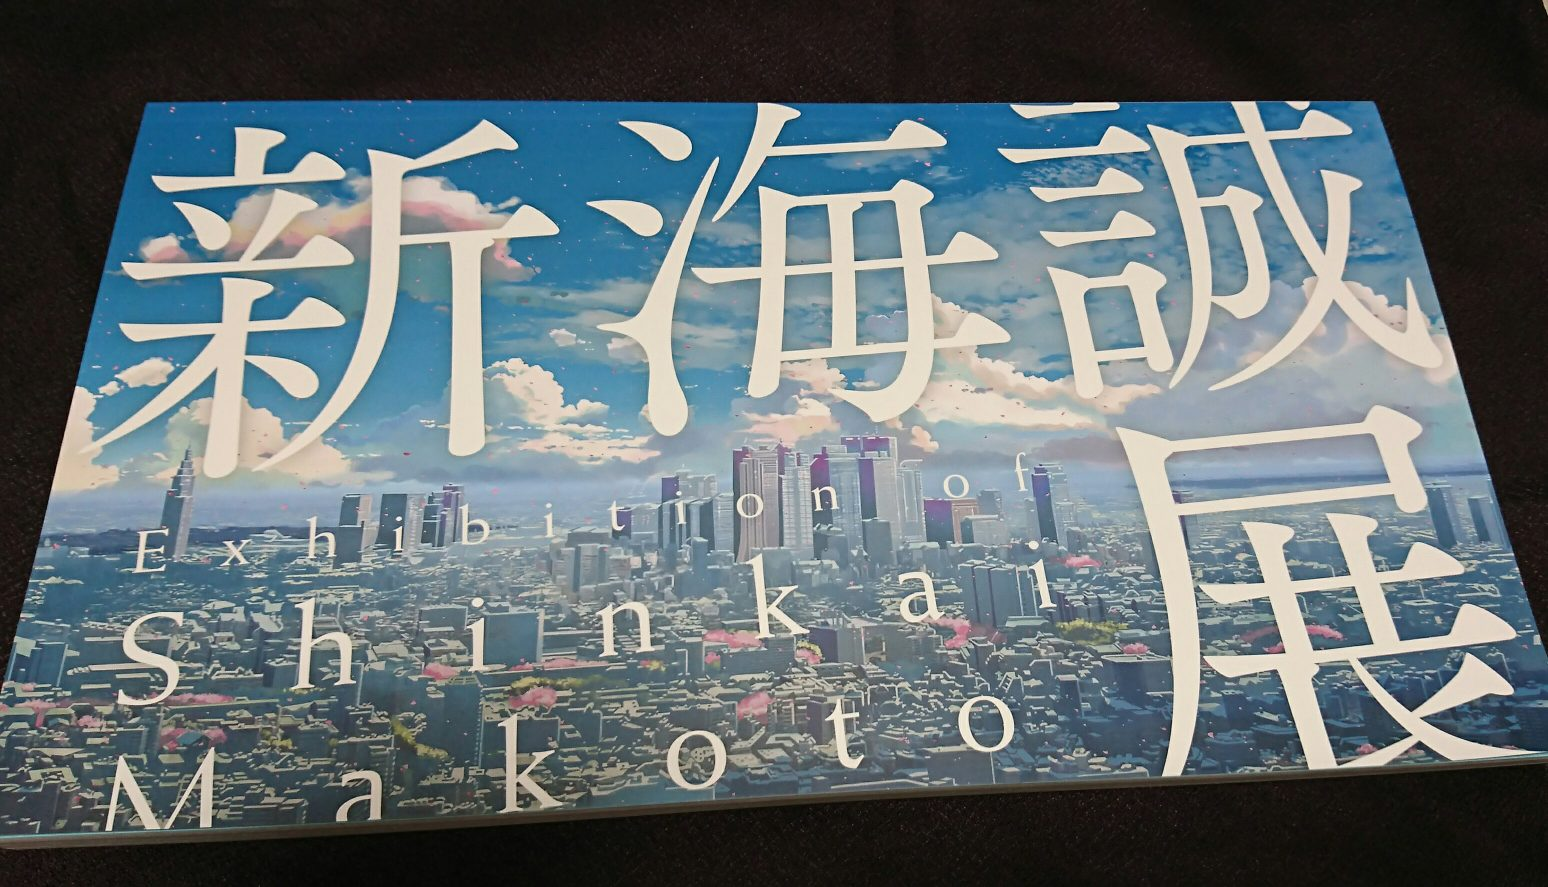 illustrated book_The exhibition of Makoto Shinkai